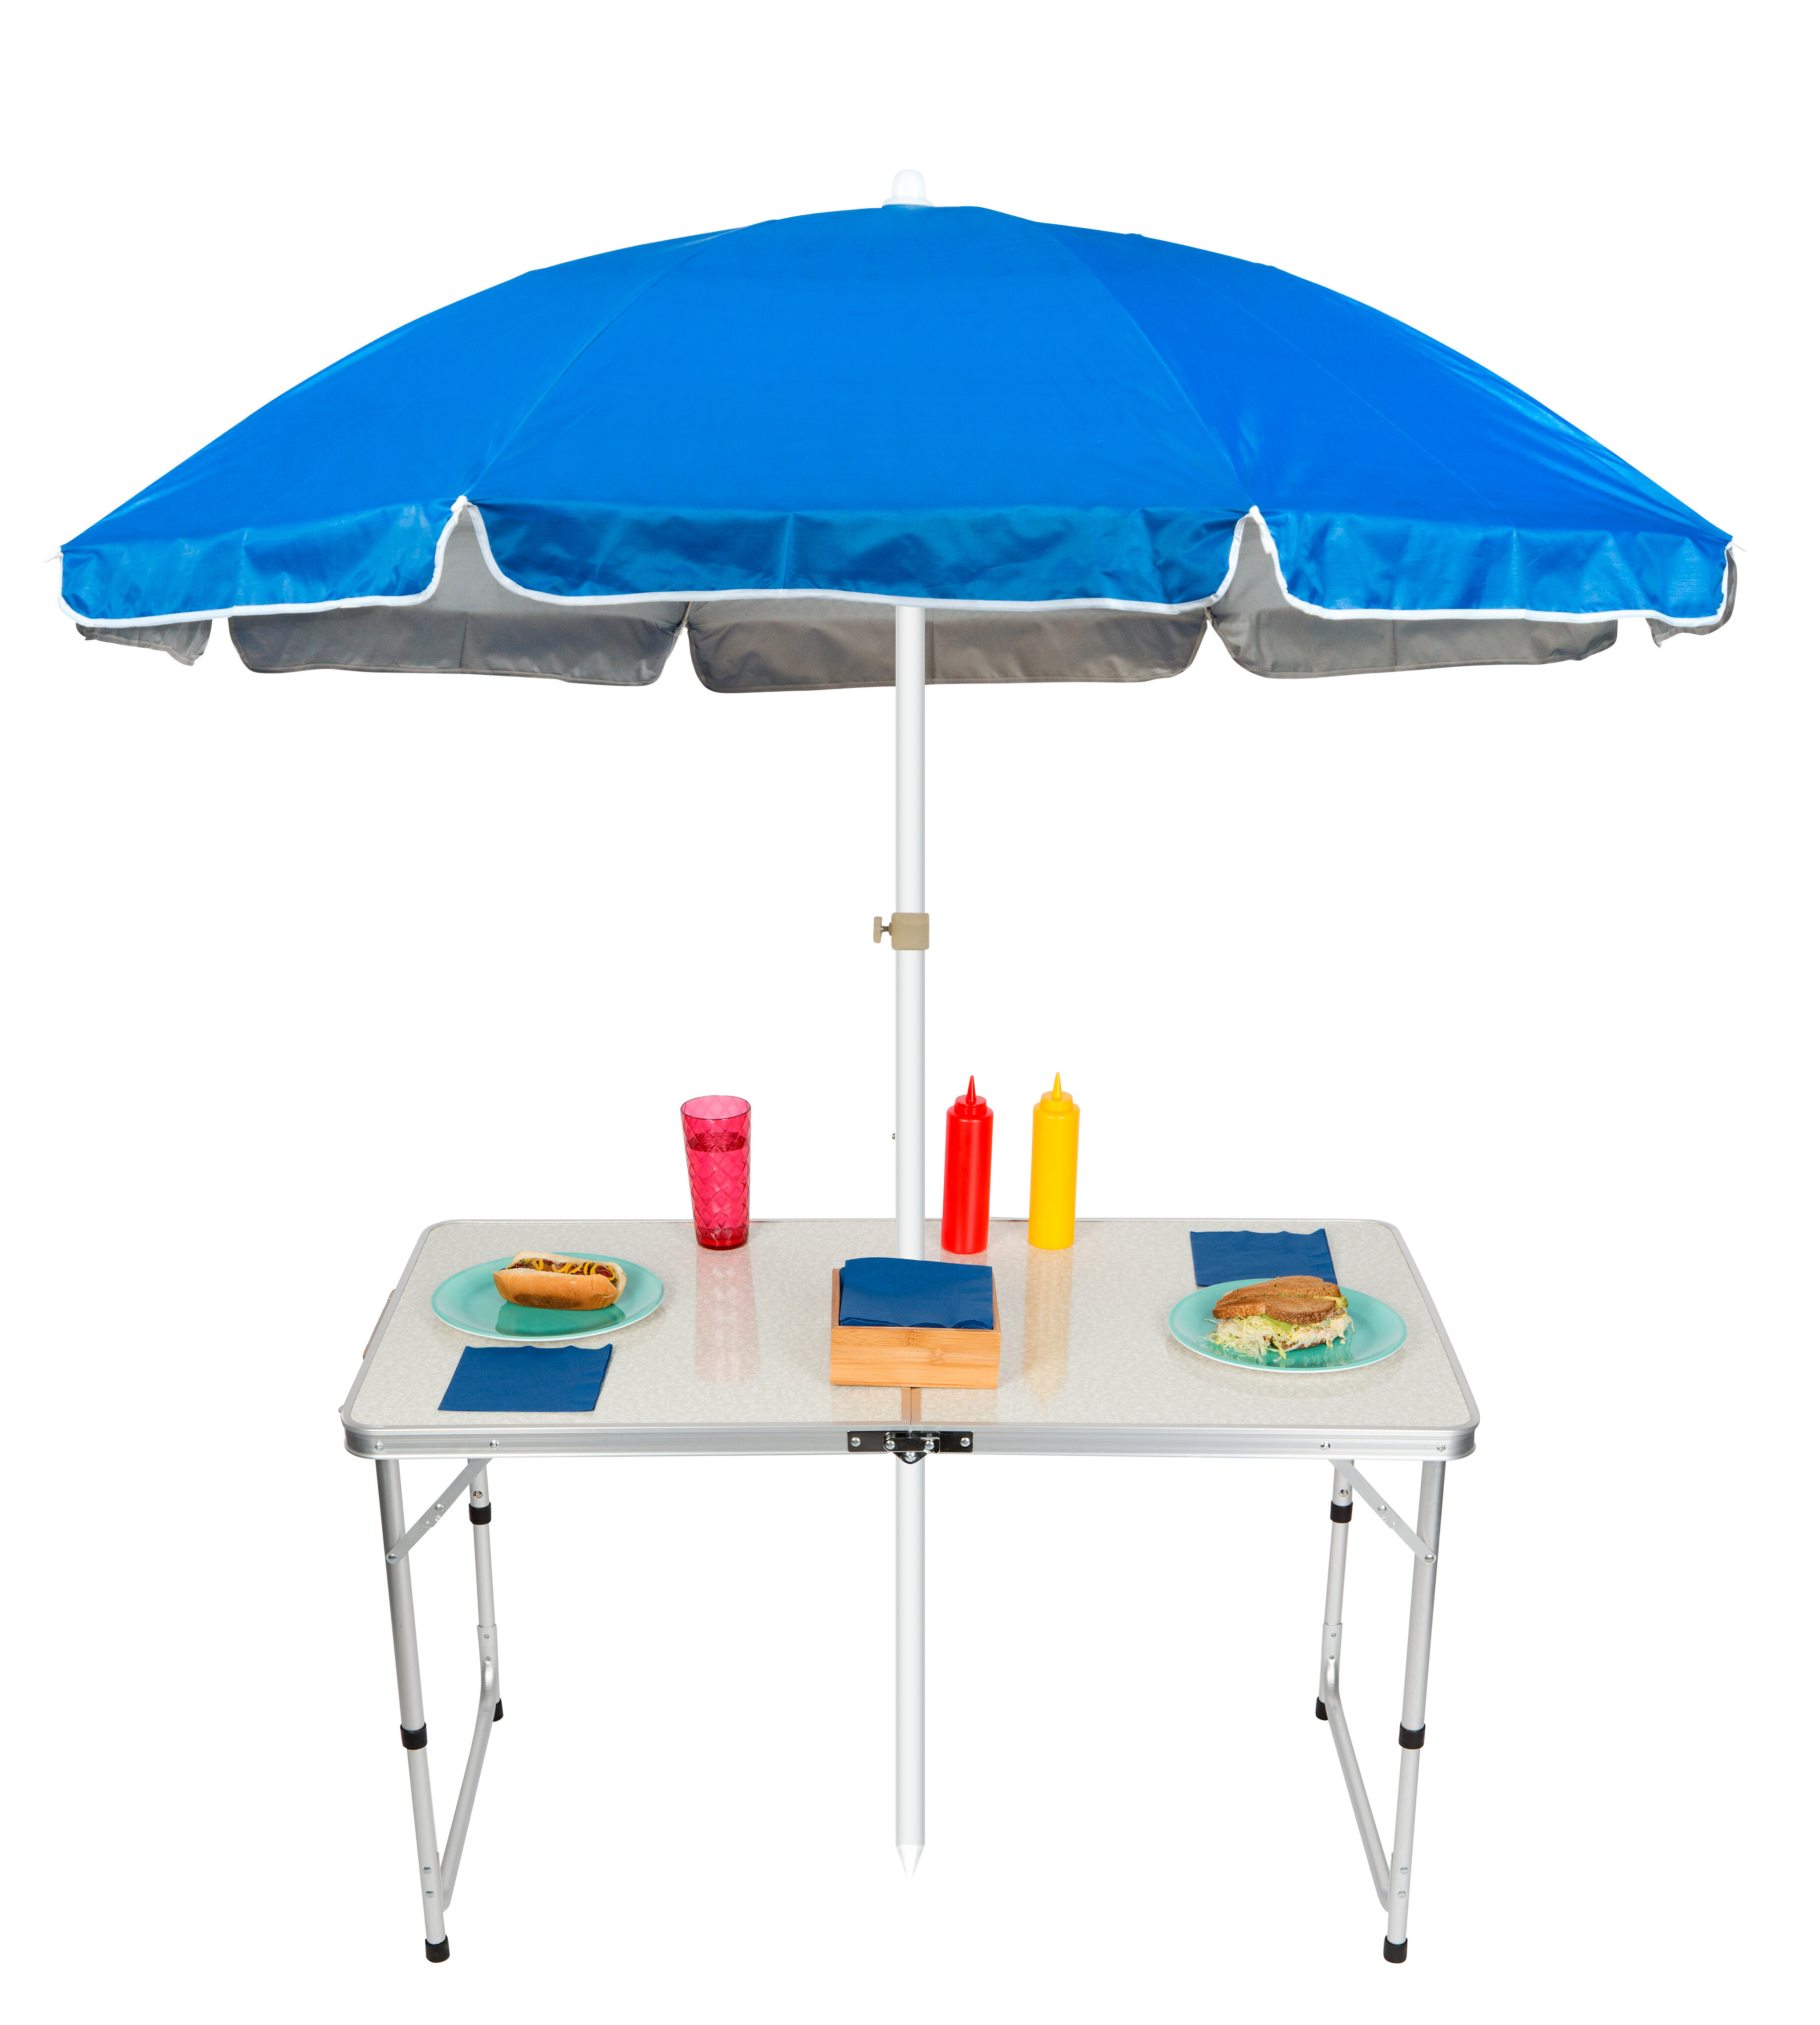 Stupendous Adjustable Portable Folding Camp Table 6 5 Beach Umbrella Gmtry Best Dining Table And Chair Ideas Images Gmtryco